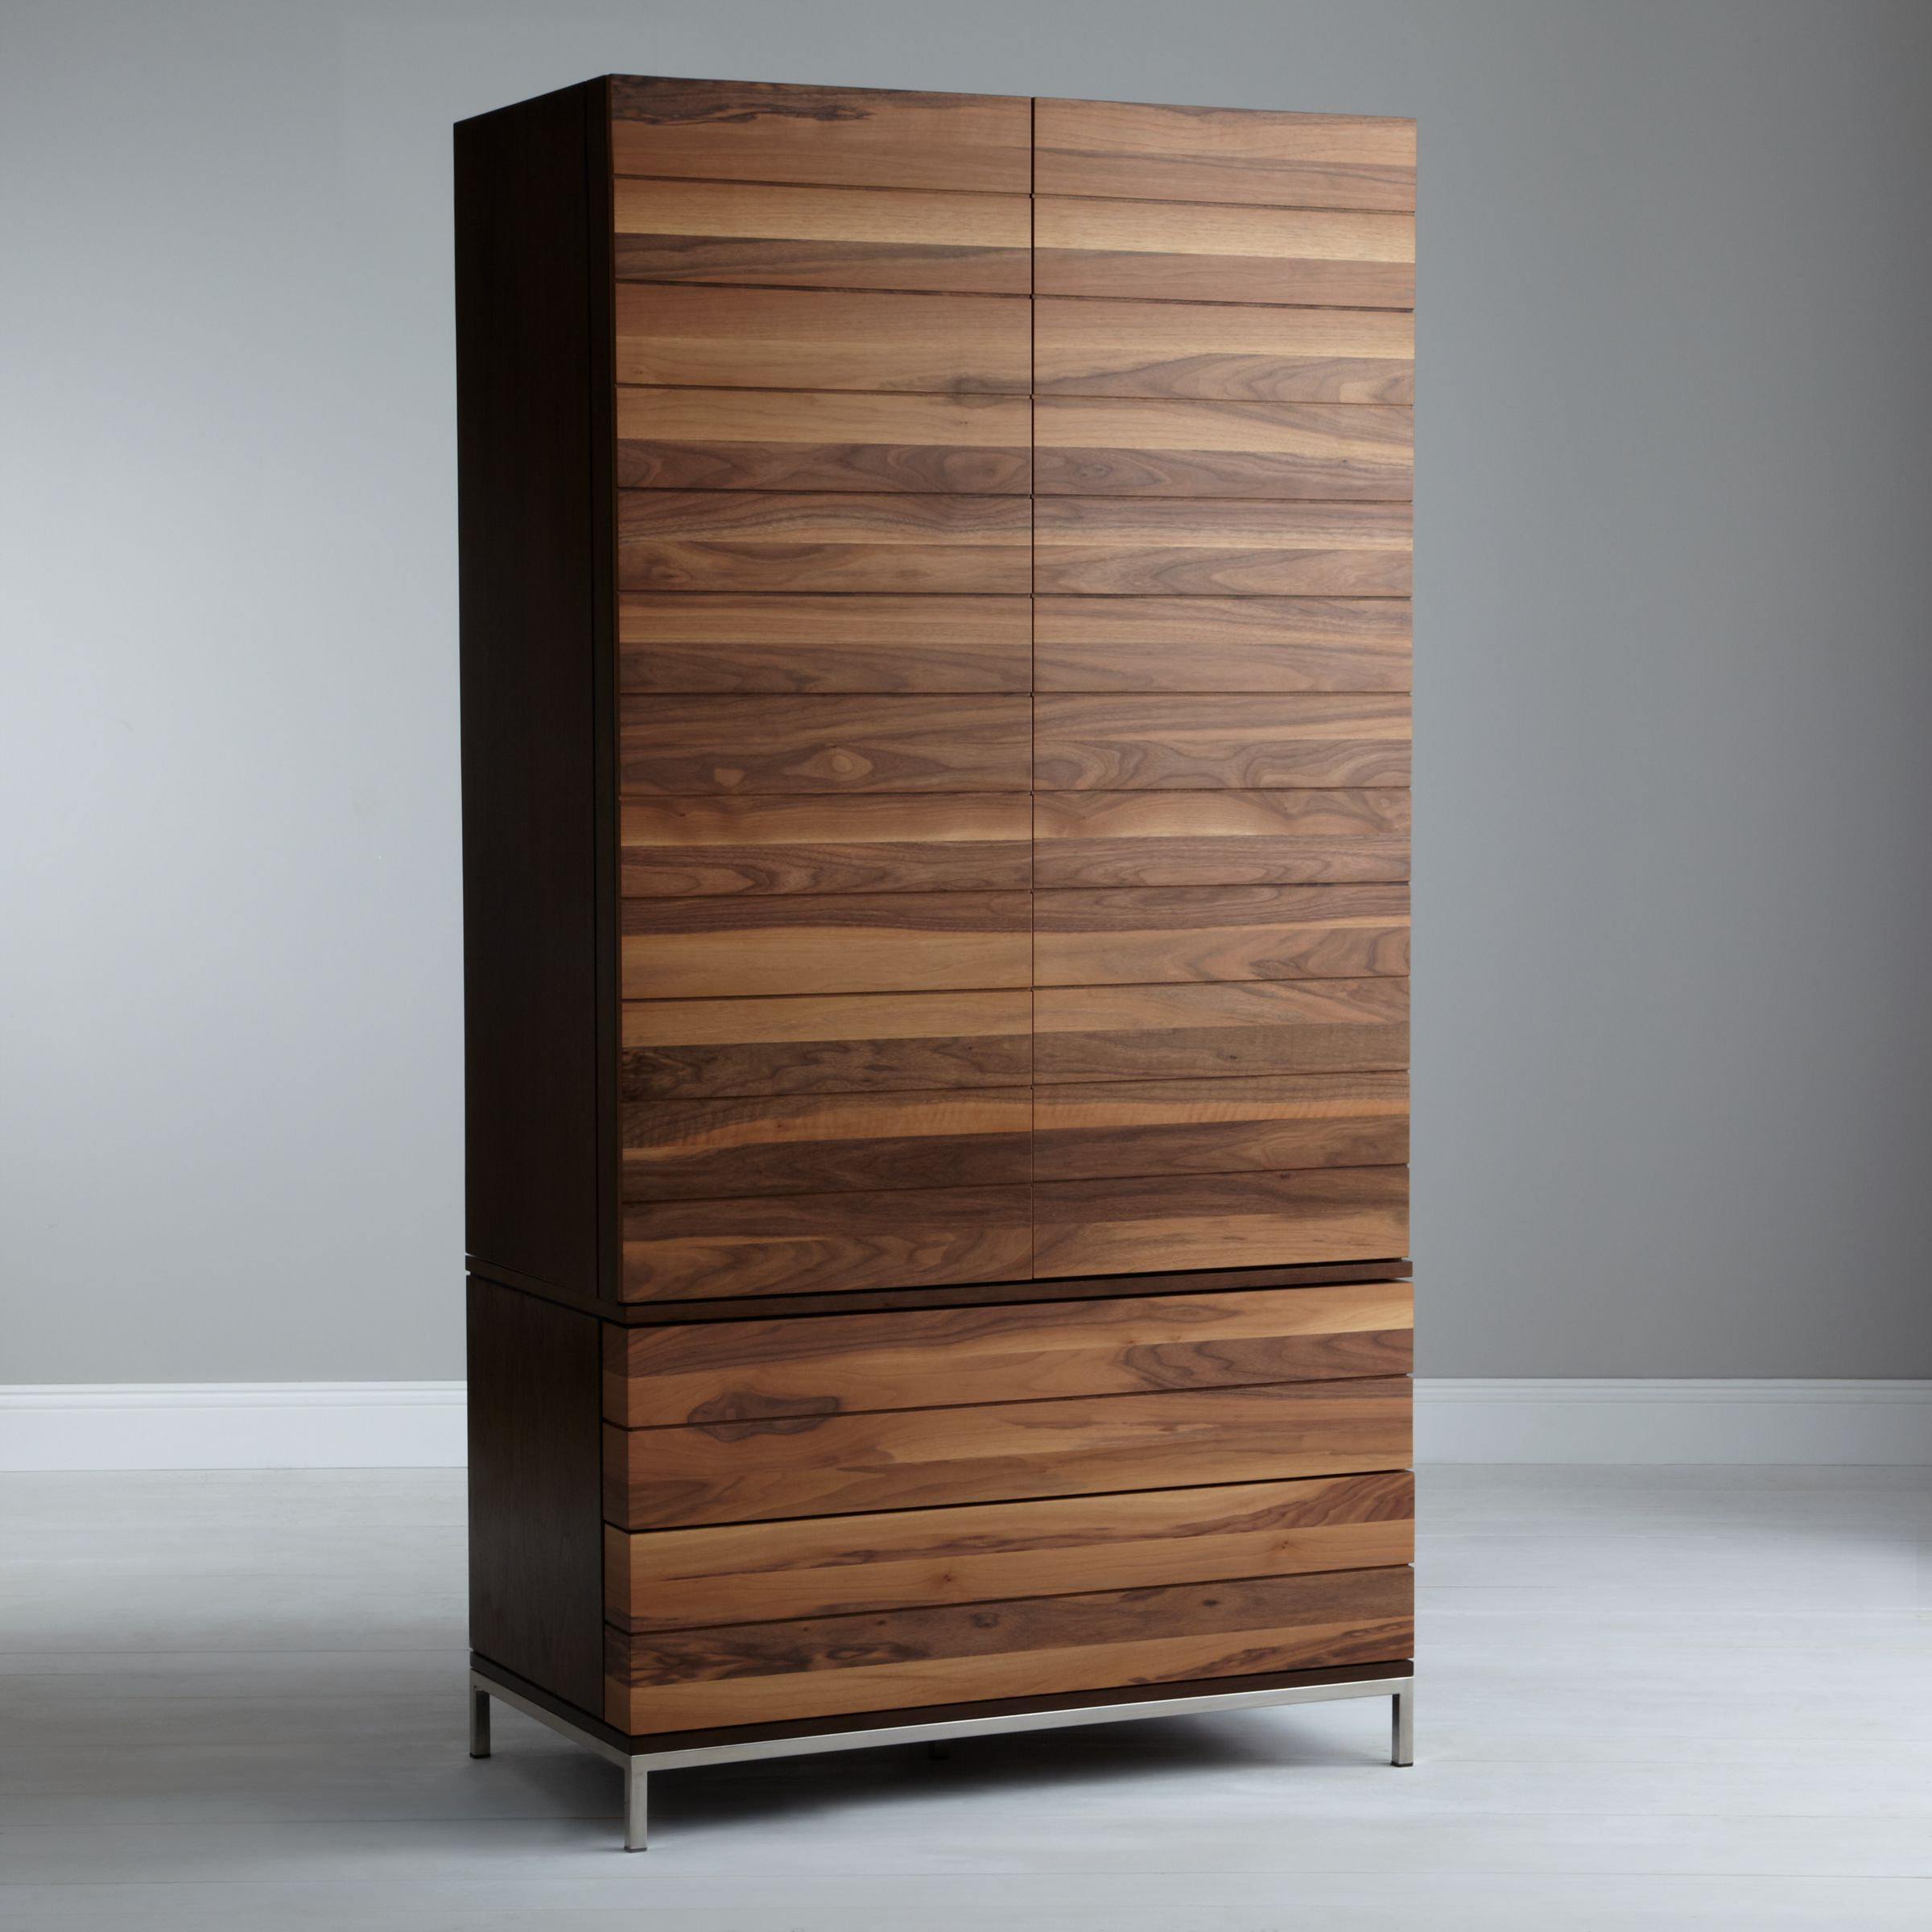 Nolte bedroom furniture john lewis for Furniture john lewis